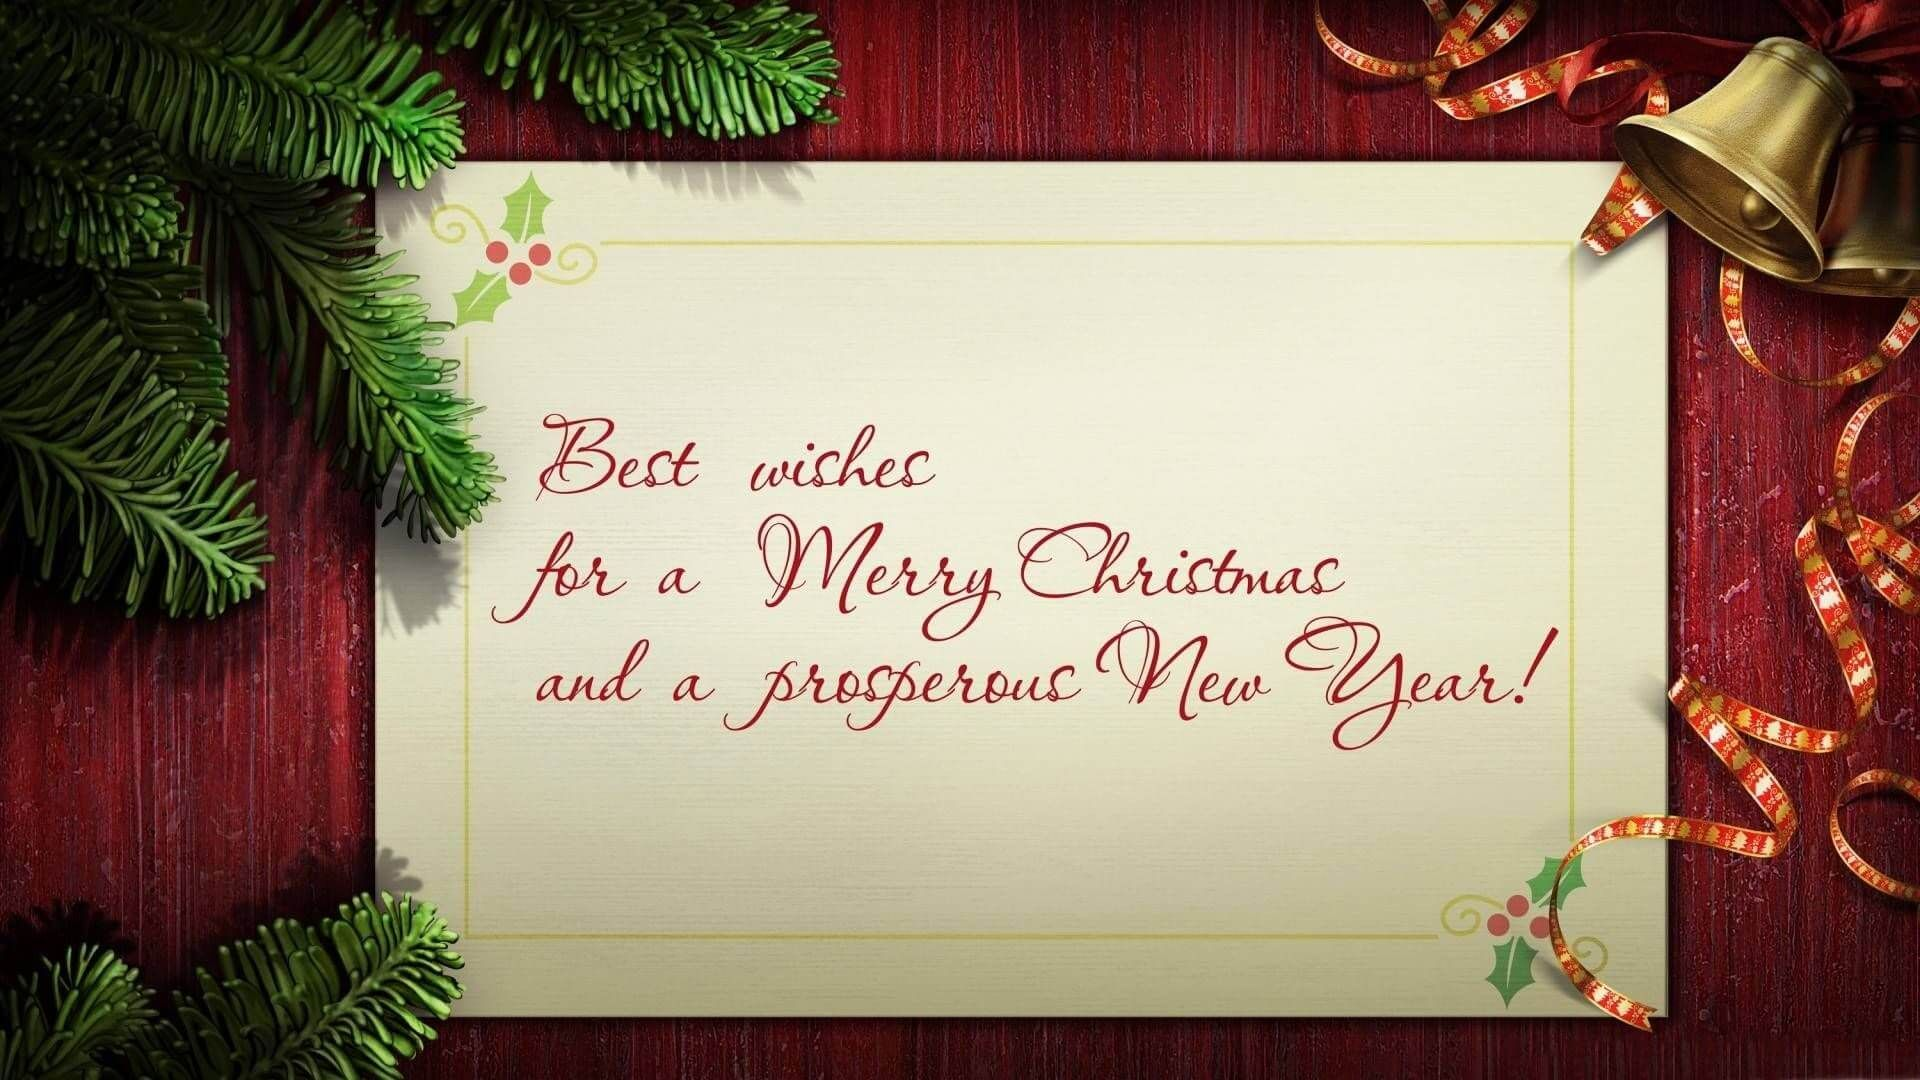 Merry Christmas 2016 Wishes Images Quotes Messages Greetings Merry